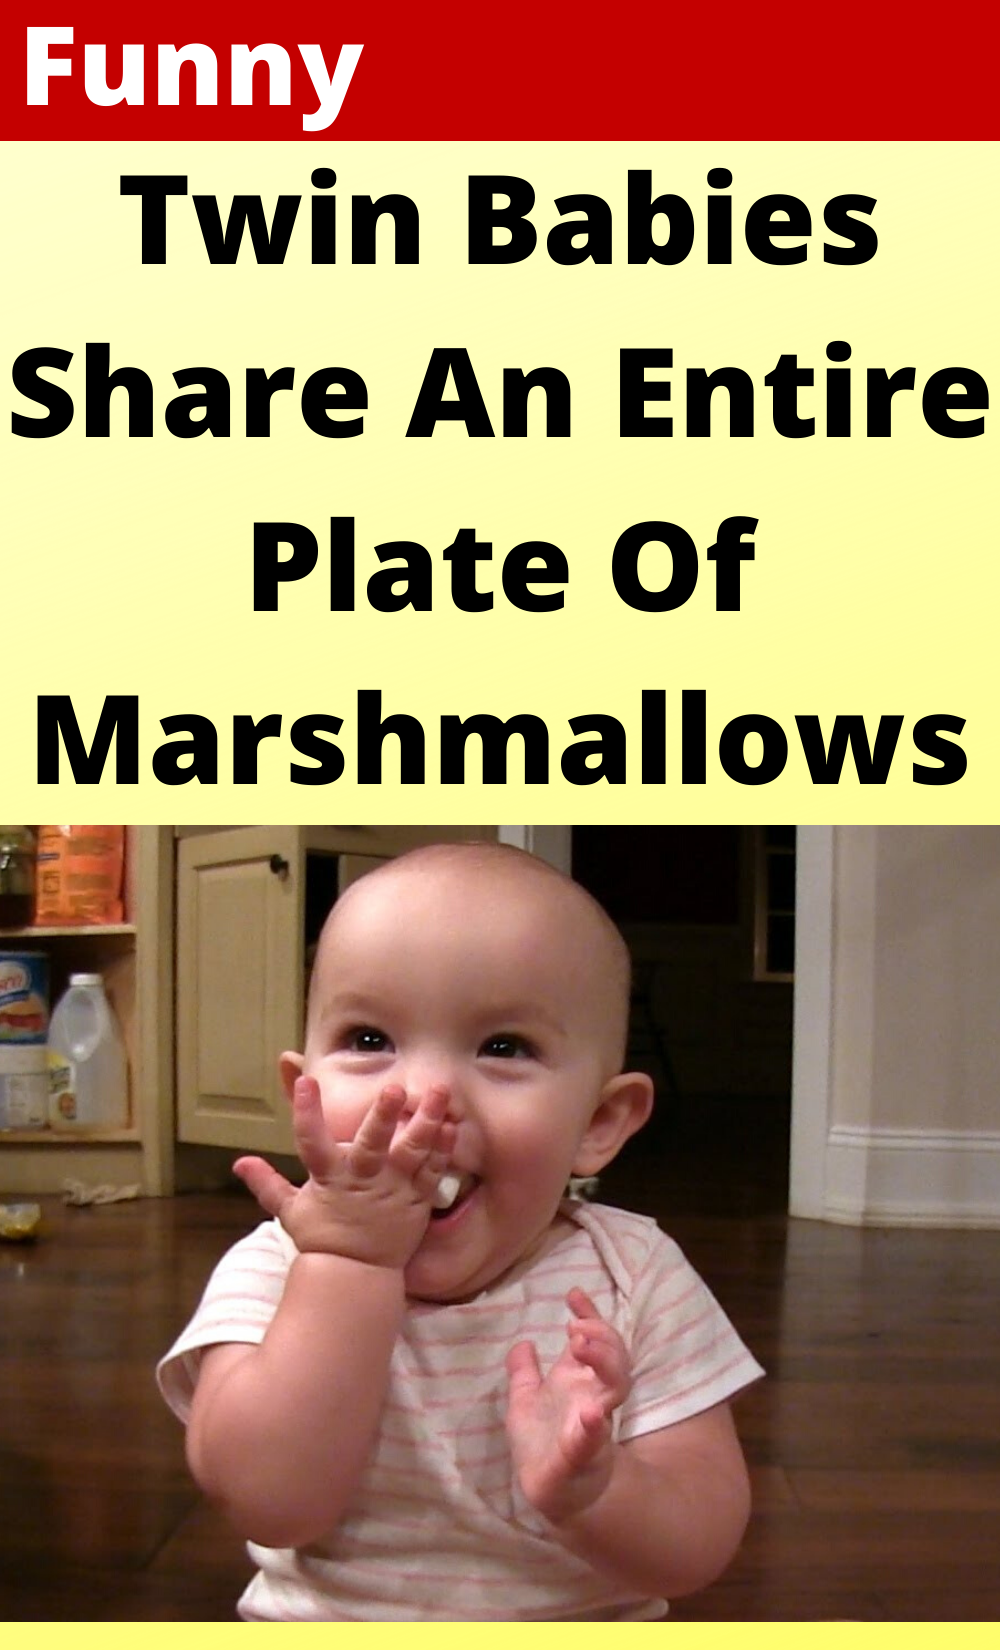 Twin Babies Share An Entire Plate Of Marshmallows In 2020 Twin Humor Funny Jokes Funny Posts